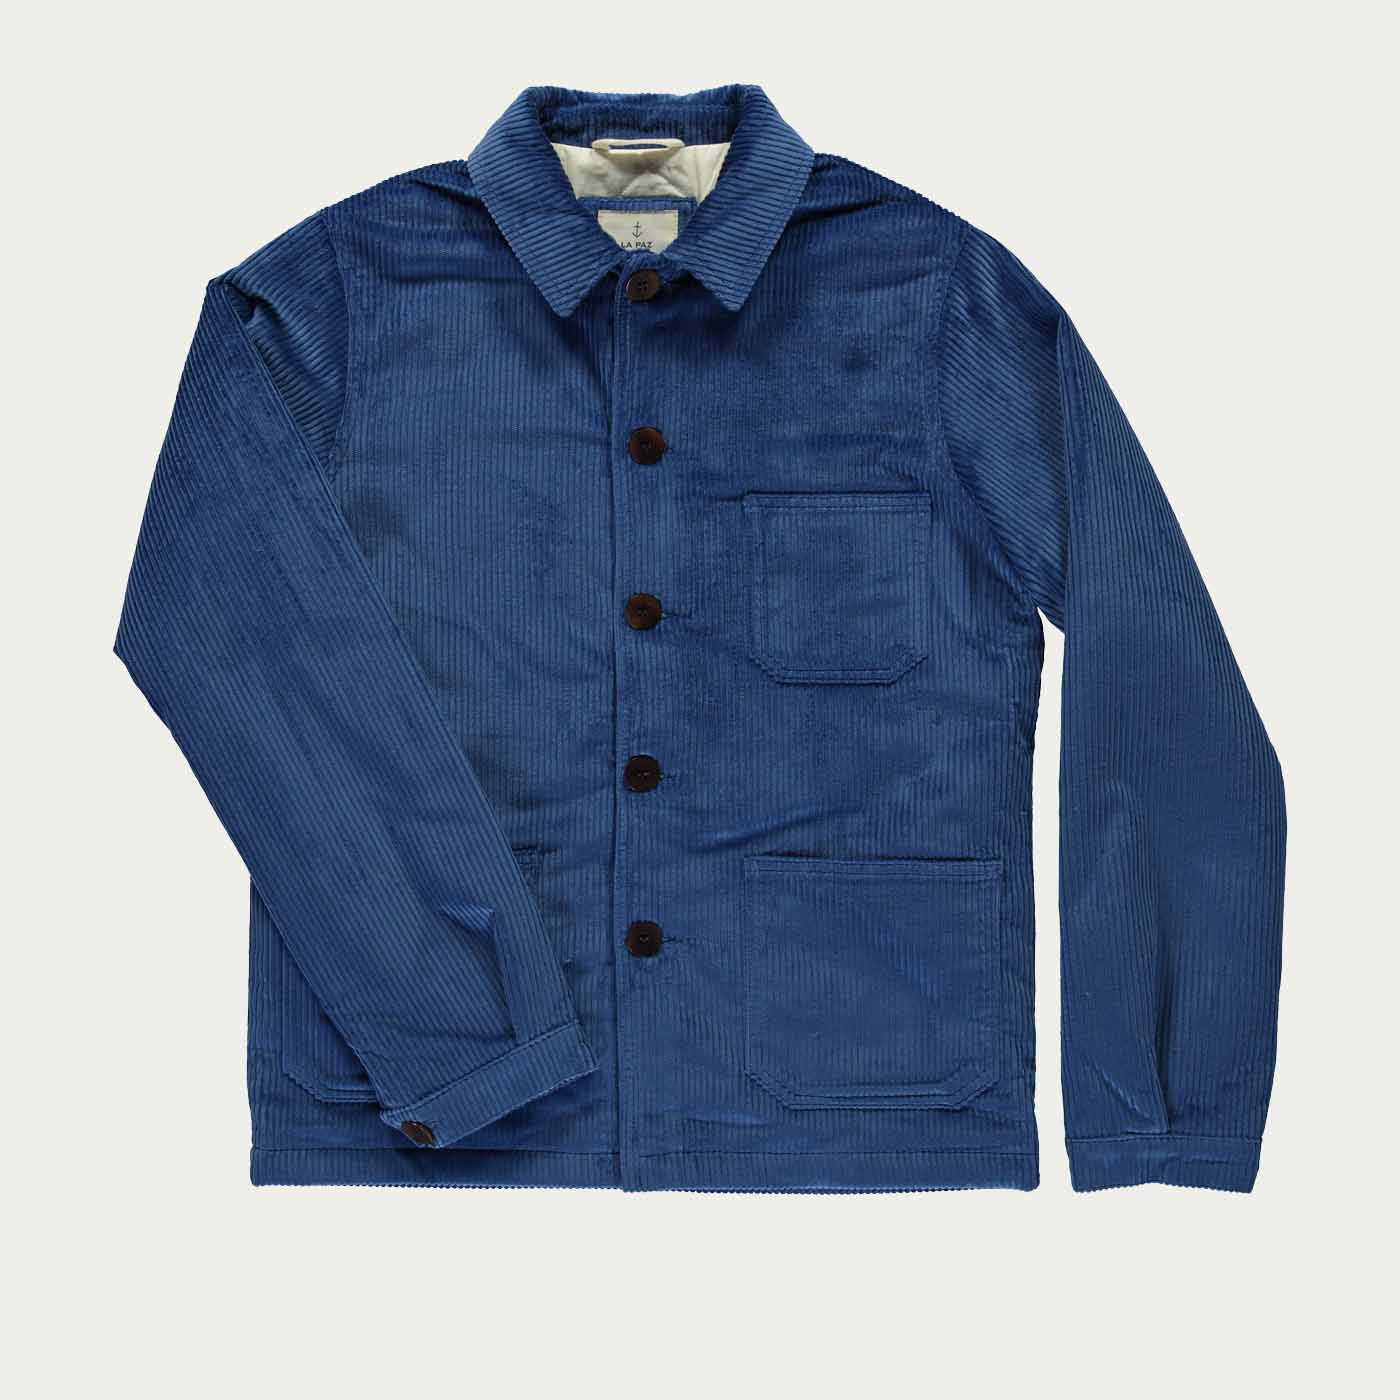 Blue Corduroy Baptista Worker Jacket | Bombinate